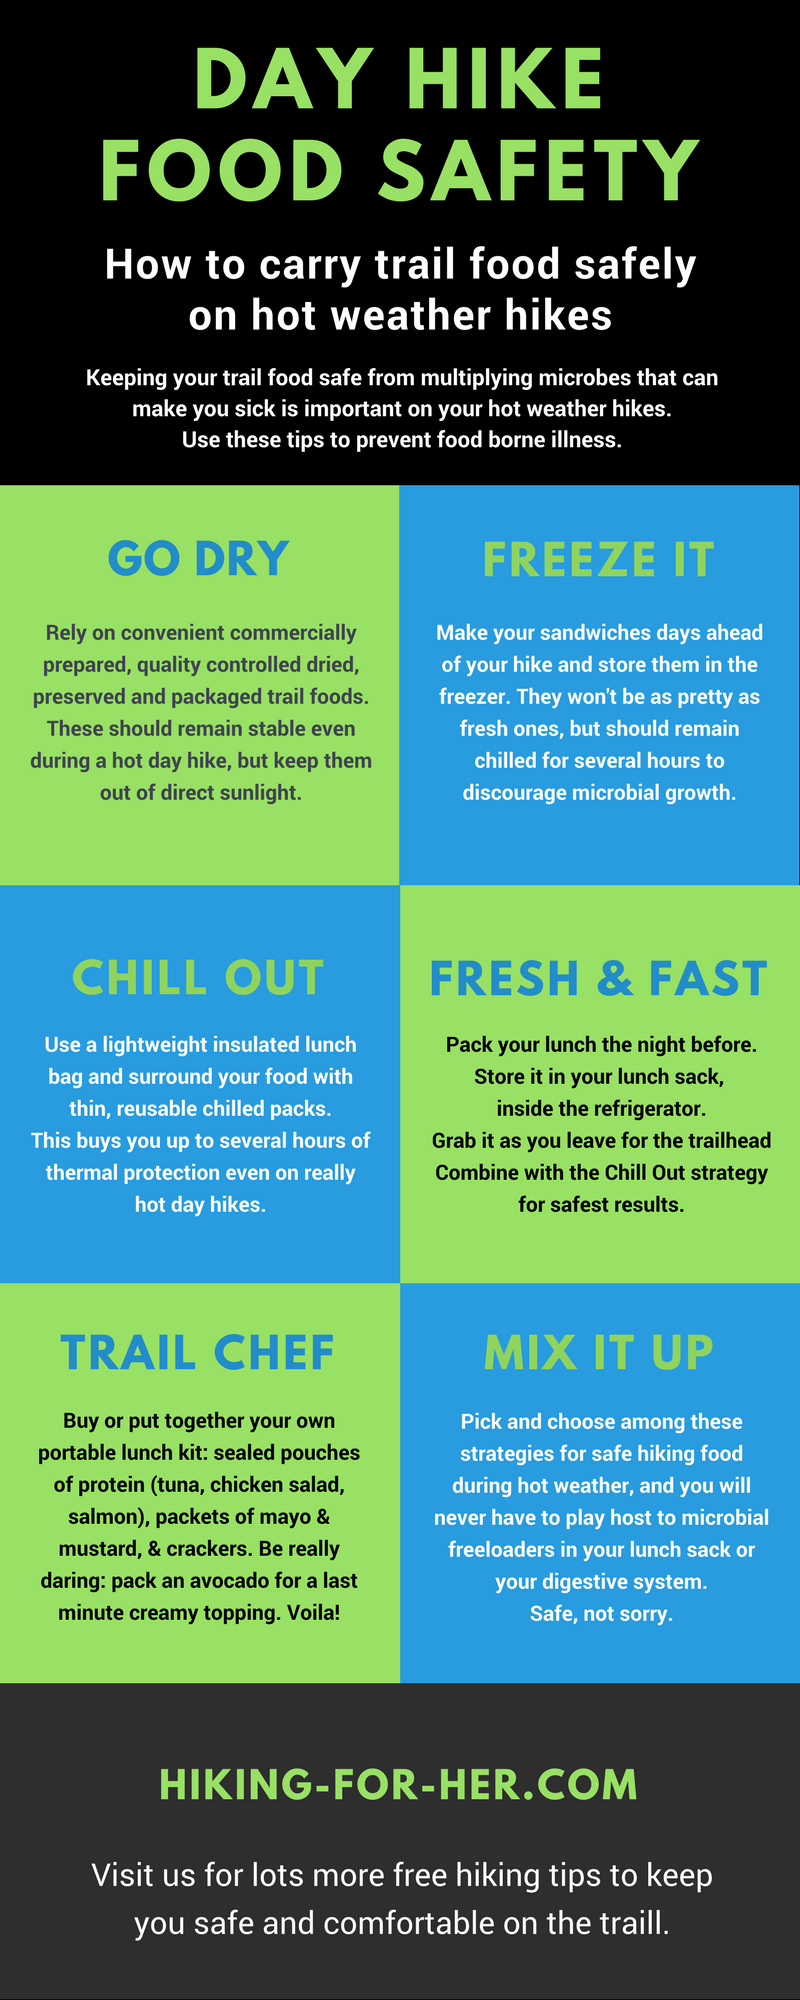 Use these day hike food safety tips from Hiking For Her to keep your lunch from spoiling on a hot day on the trail.